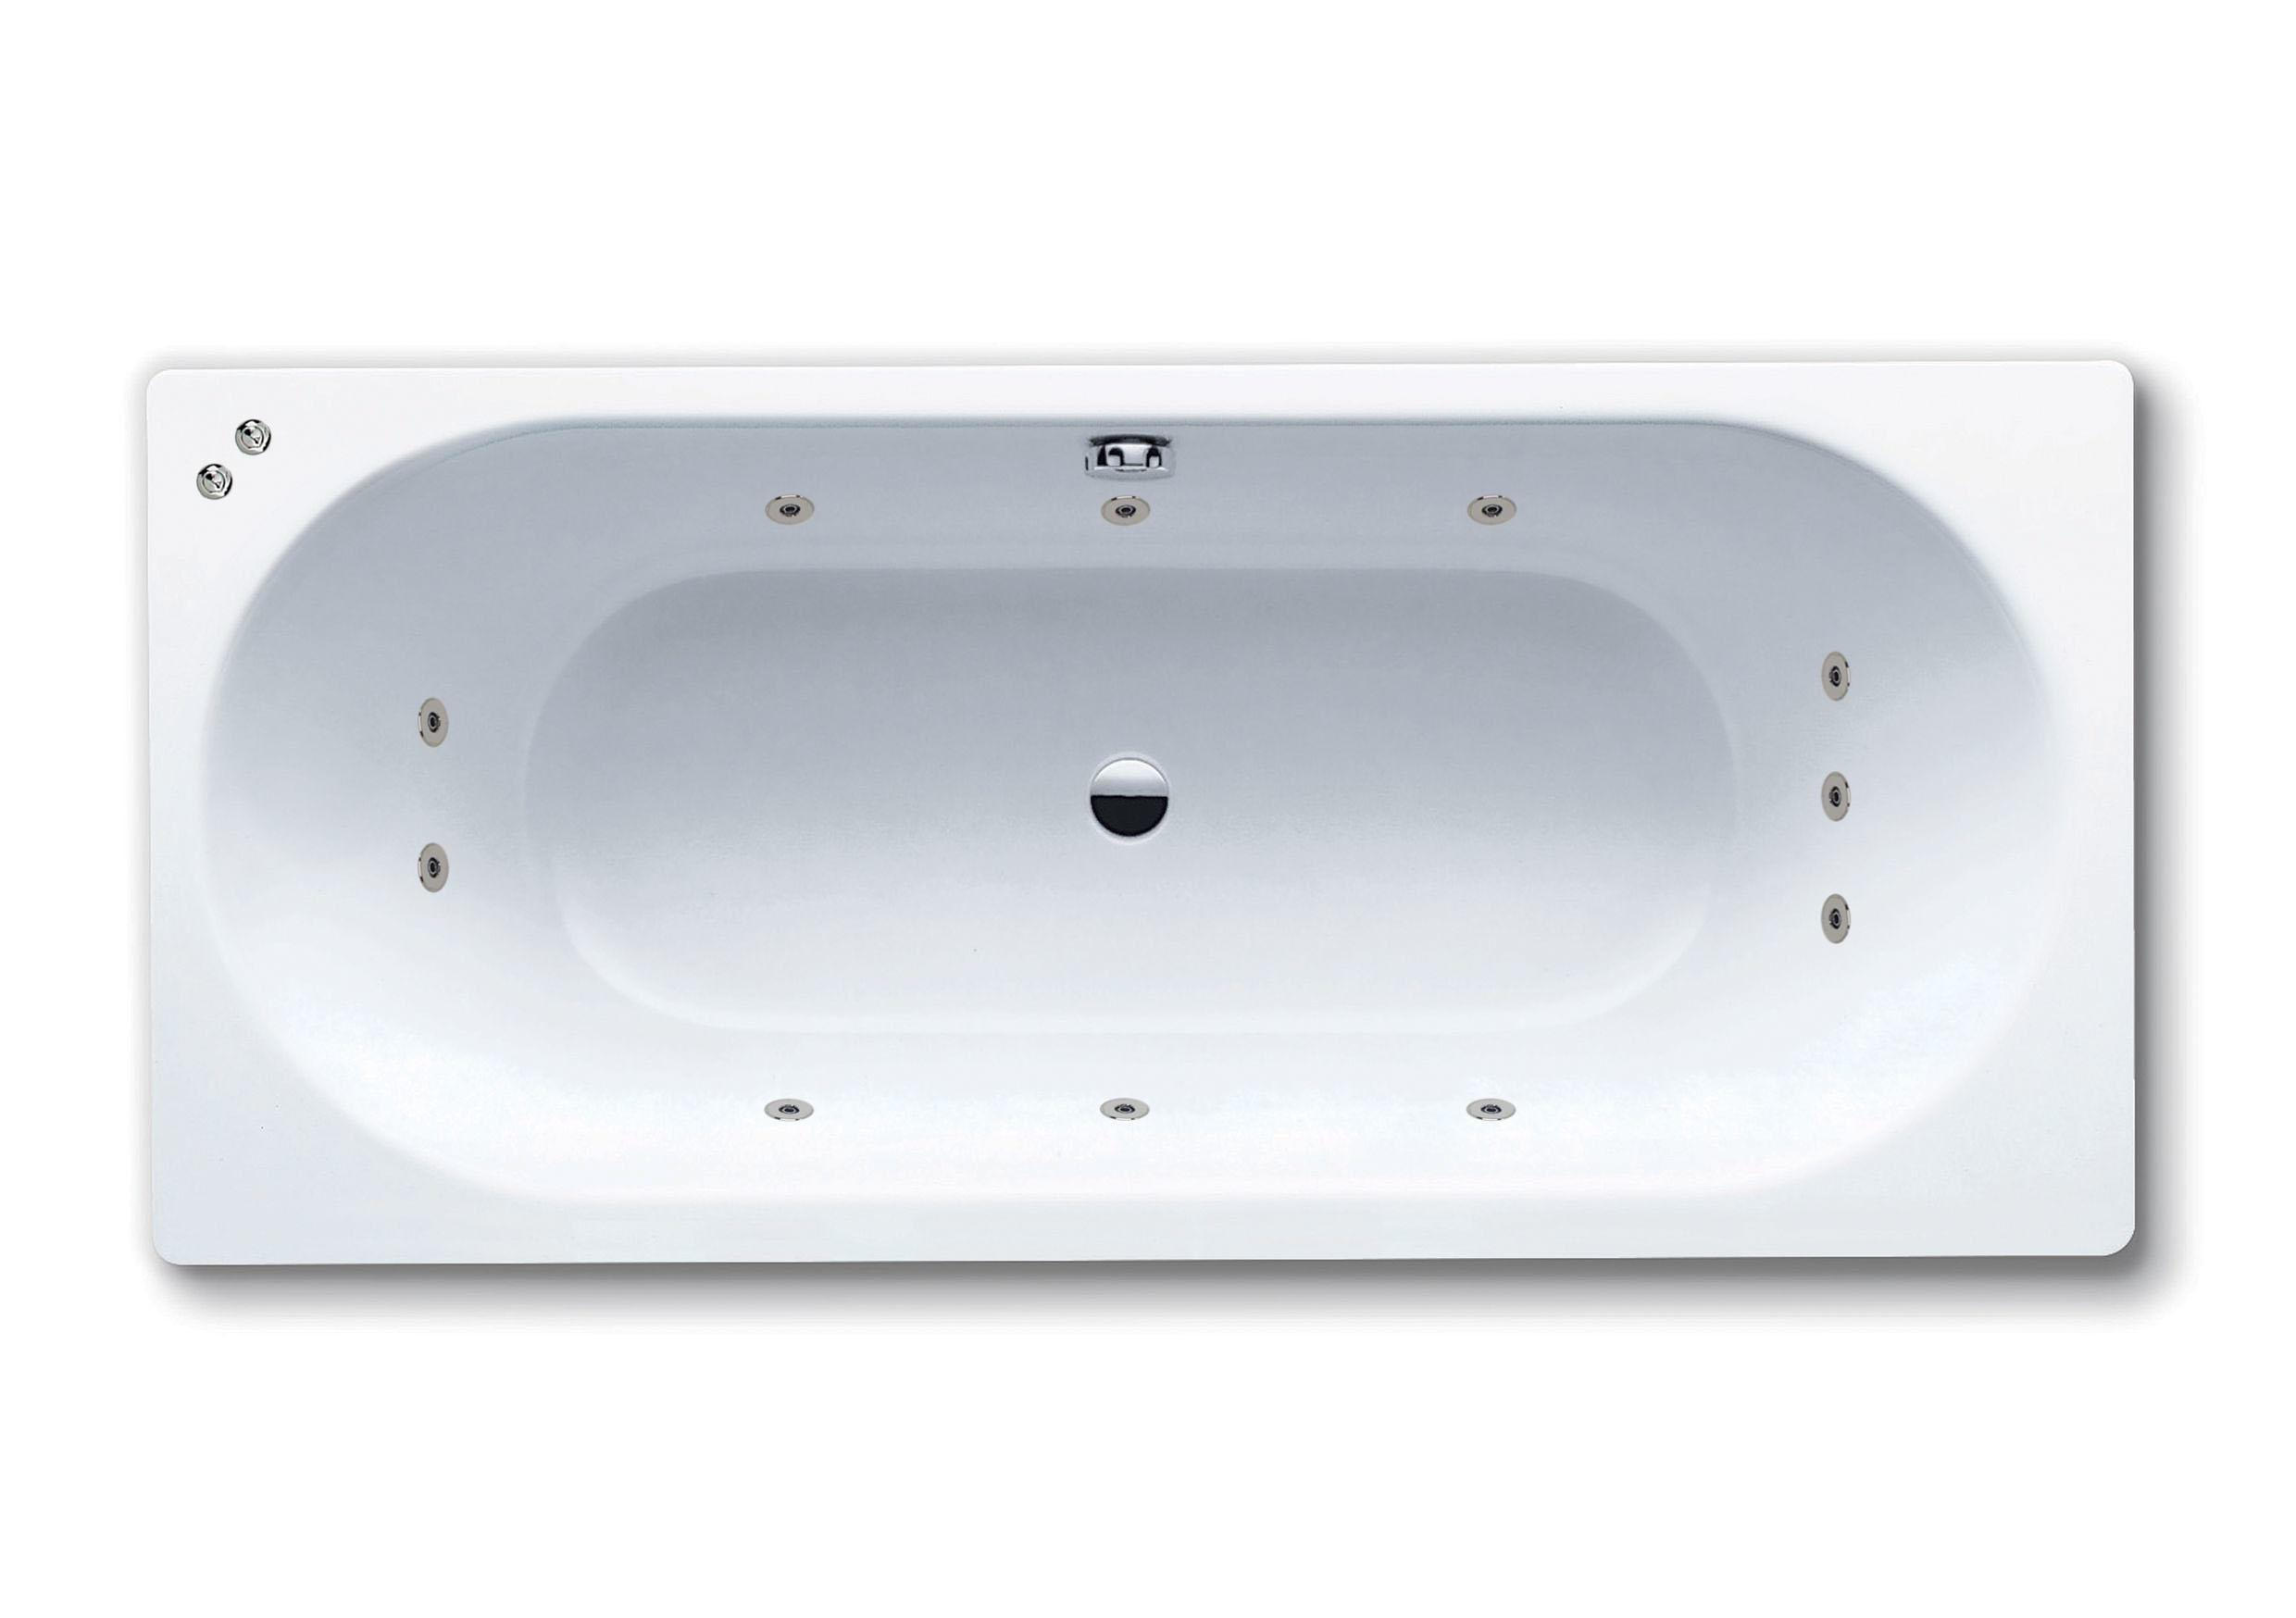 Kaldewei Classic Duo Double Ended 6, 8 & 11 Jet Whirlpool Bath